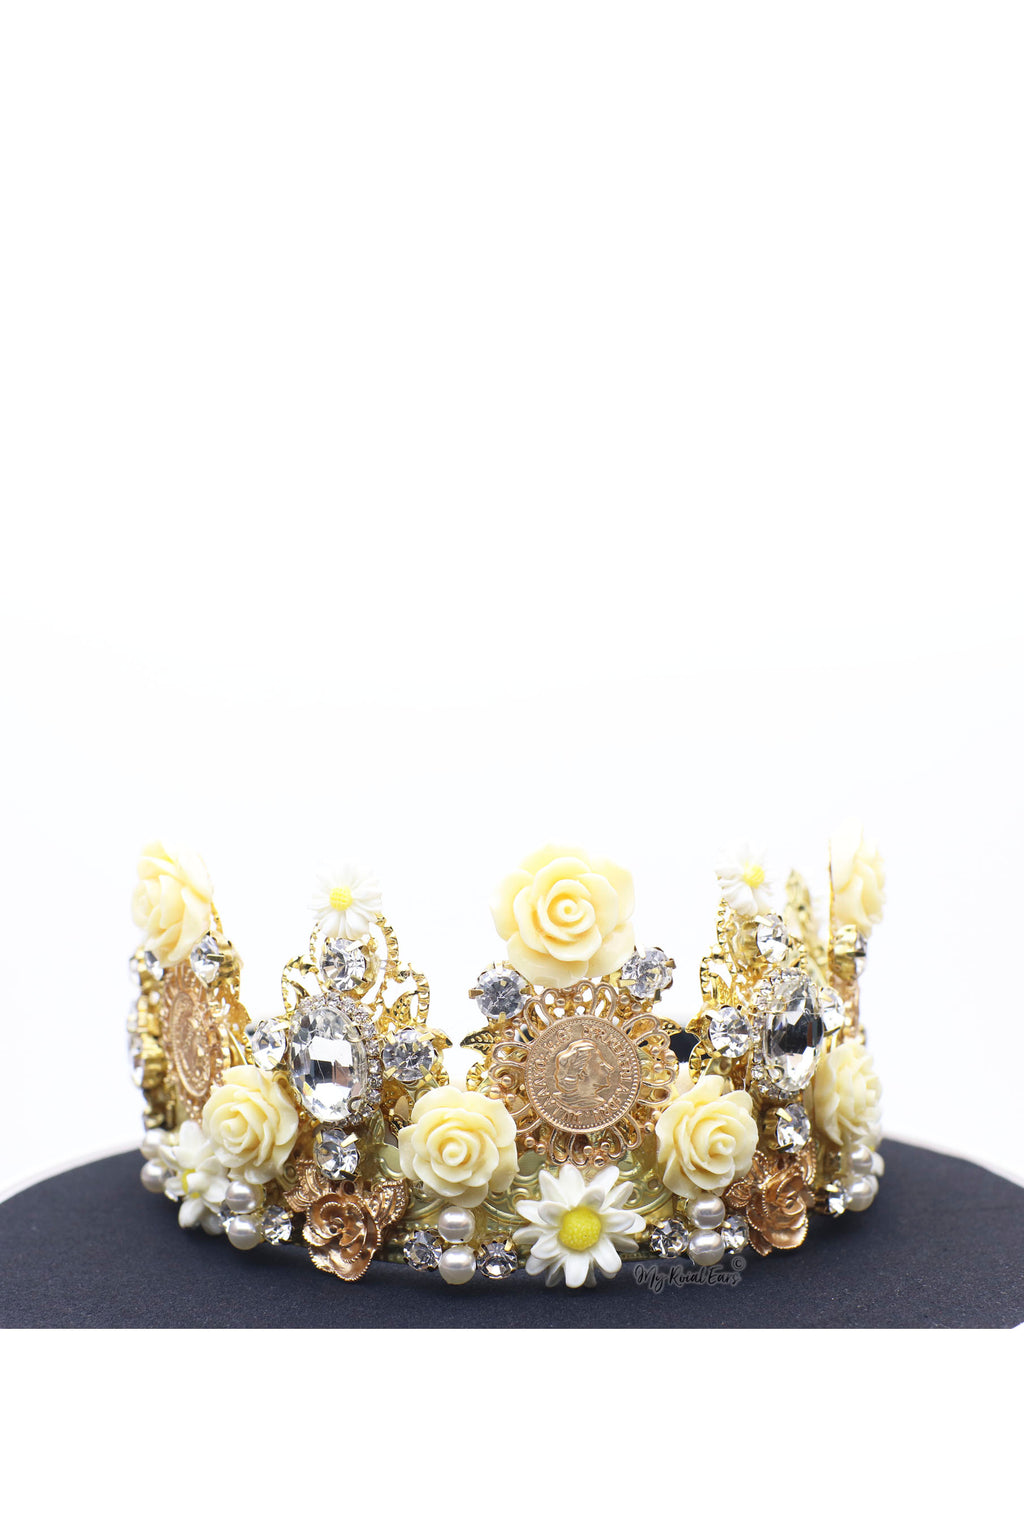 Queen Gloria- golden detailed runway headband - My Roial Ears LTD